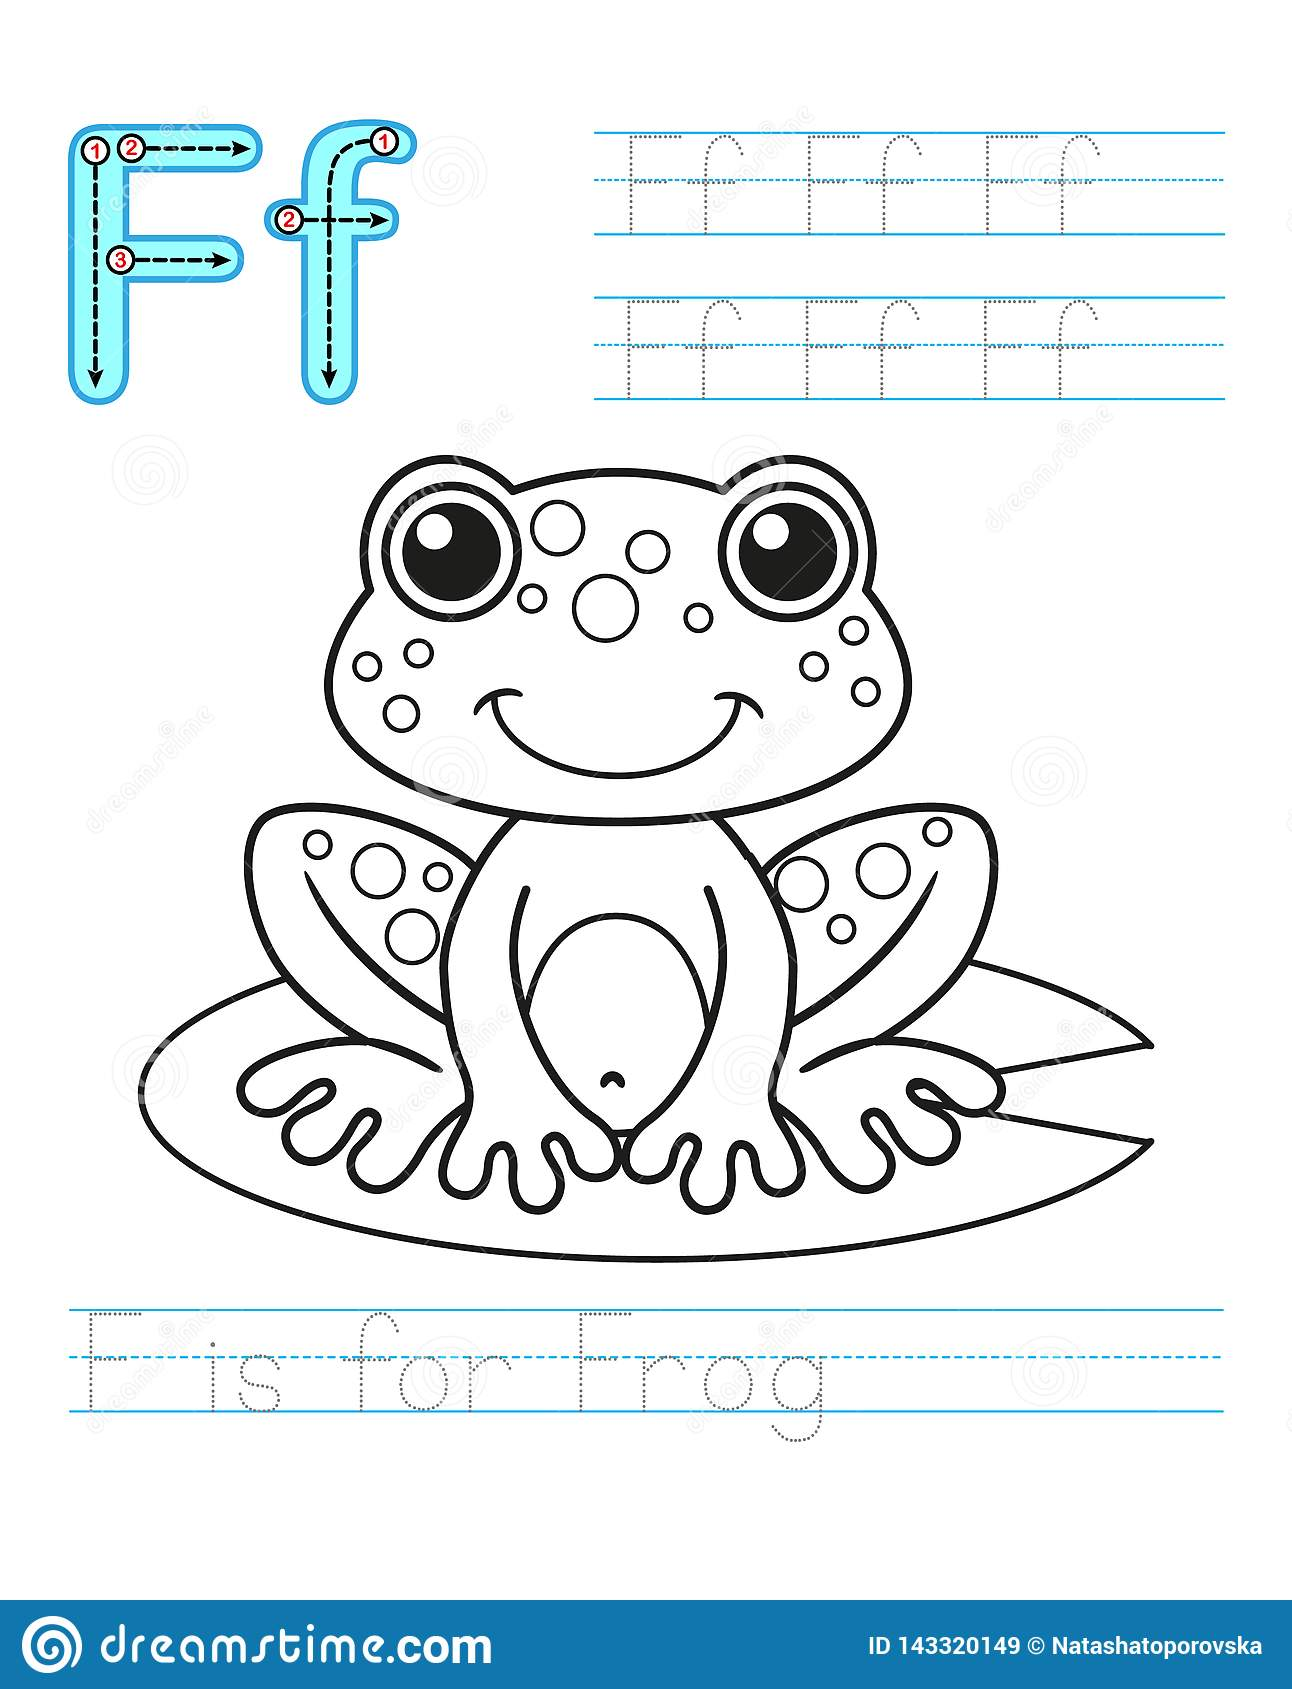 Alphabet Booklets Printable That Are Universal